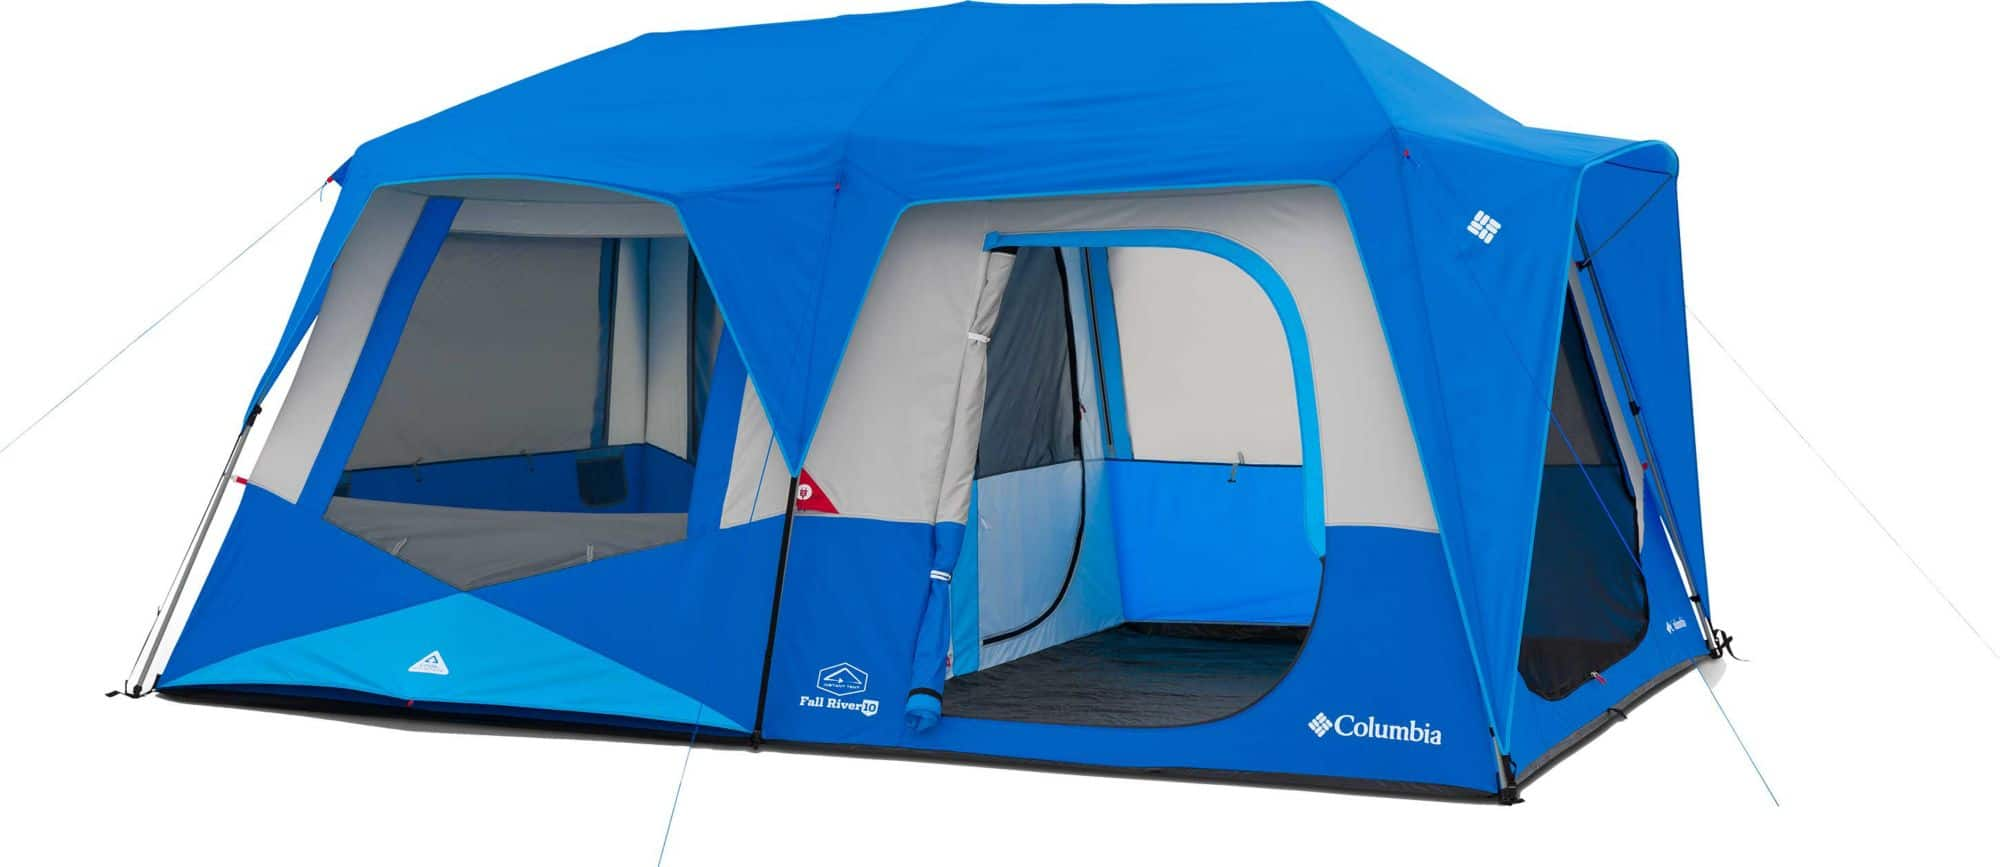 Columbia Fall River Instant Tent 8 Person 140 10 Person